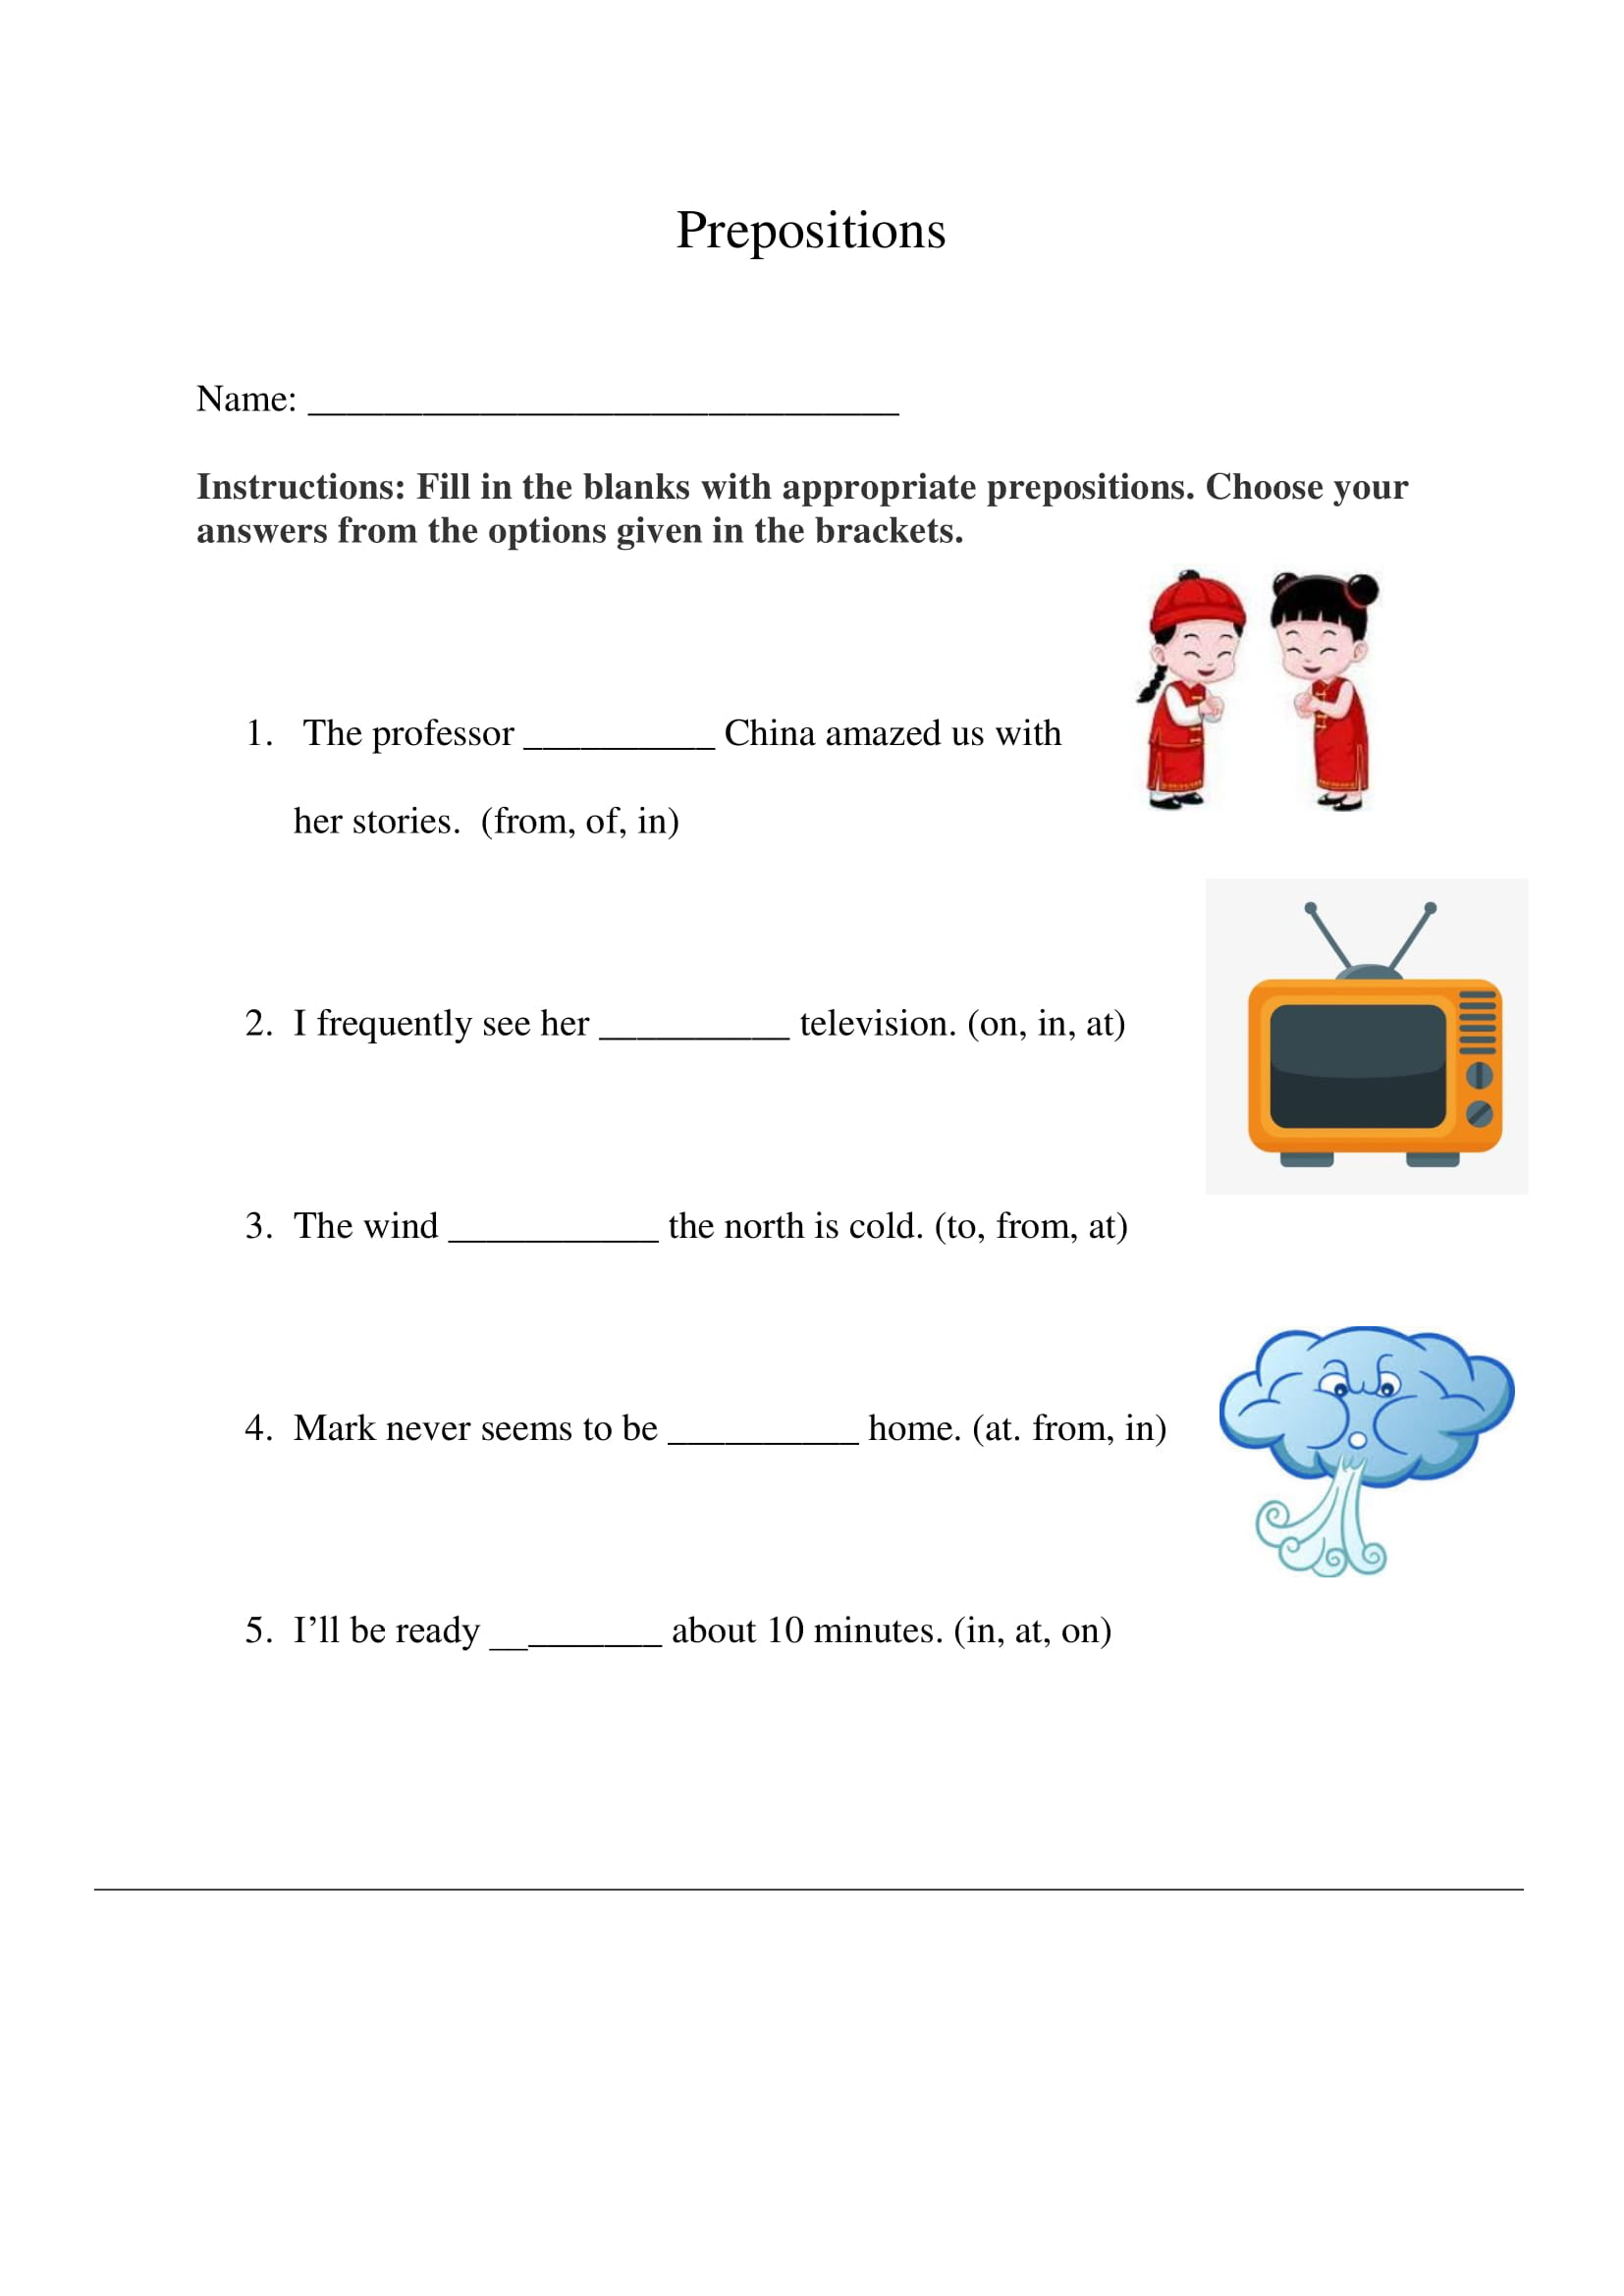 Prepositions Exercise 6